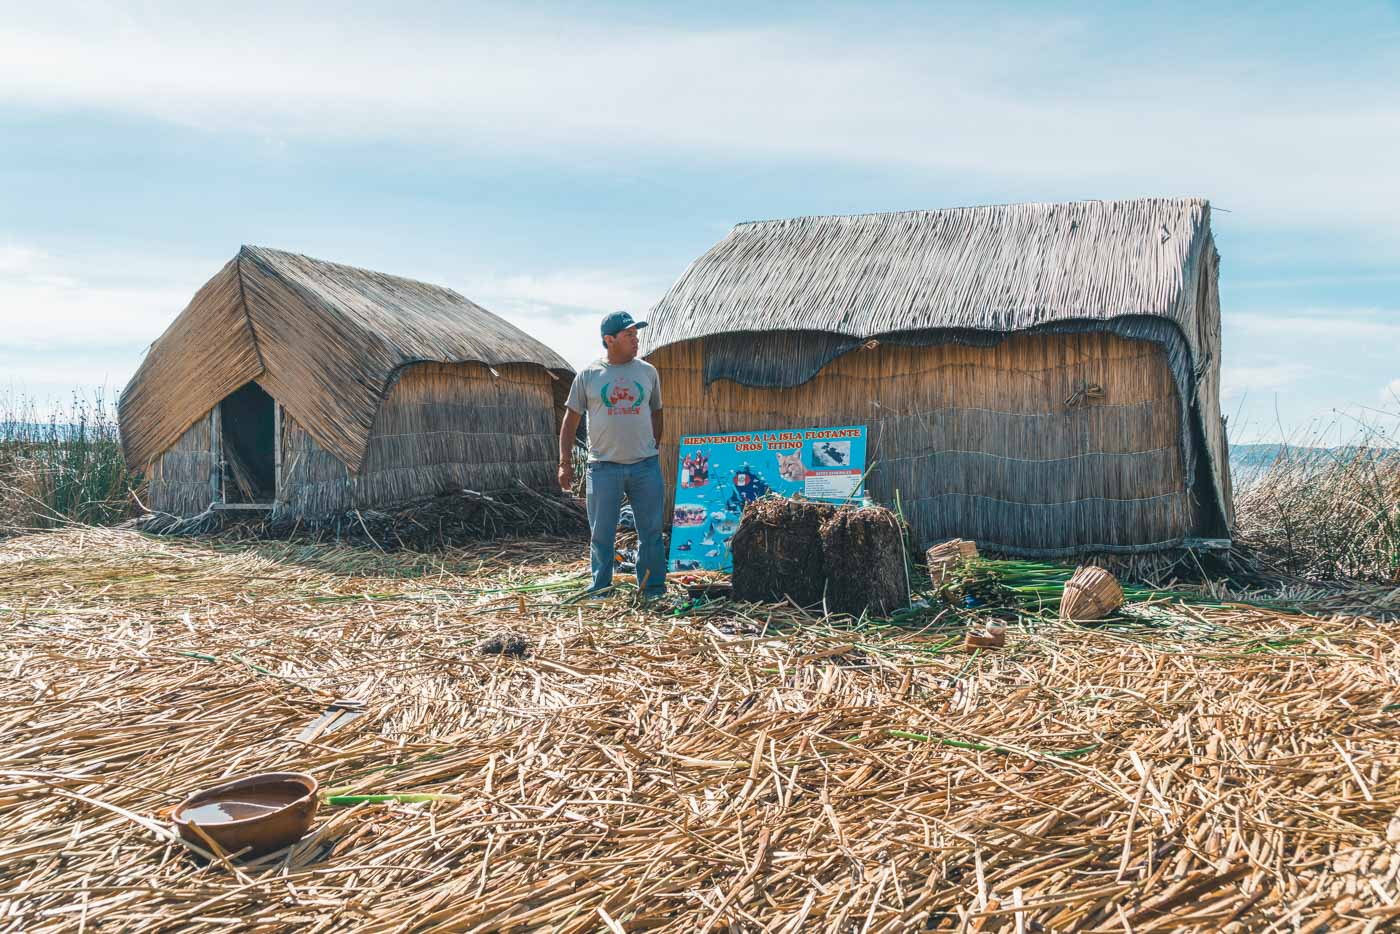 Our guide sharing insights about life on Uros Islands